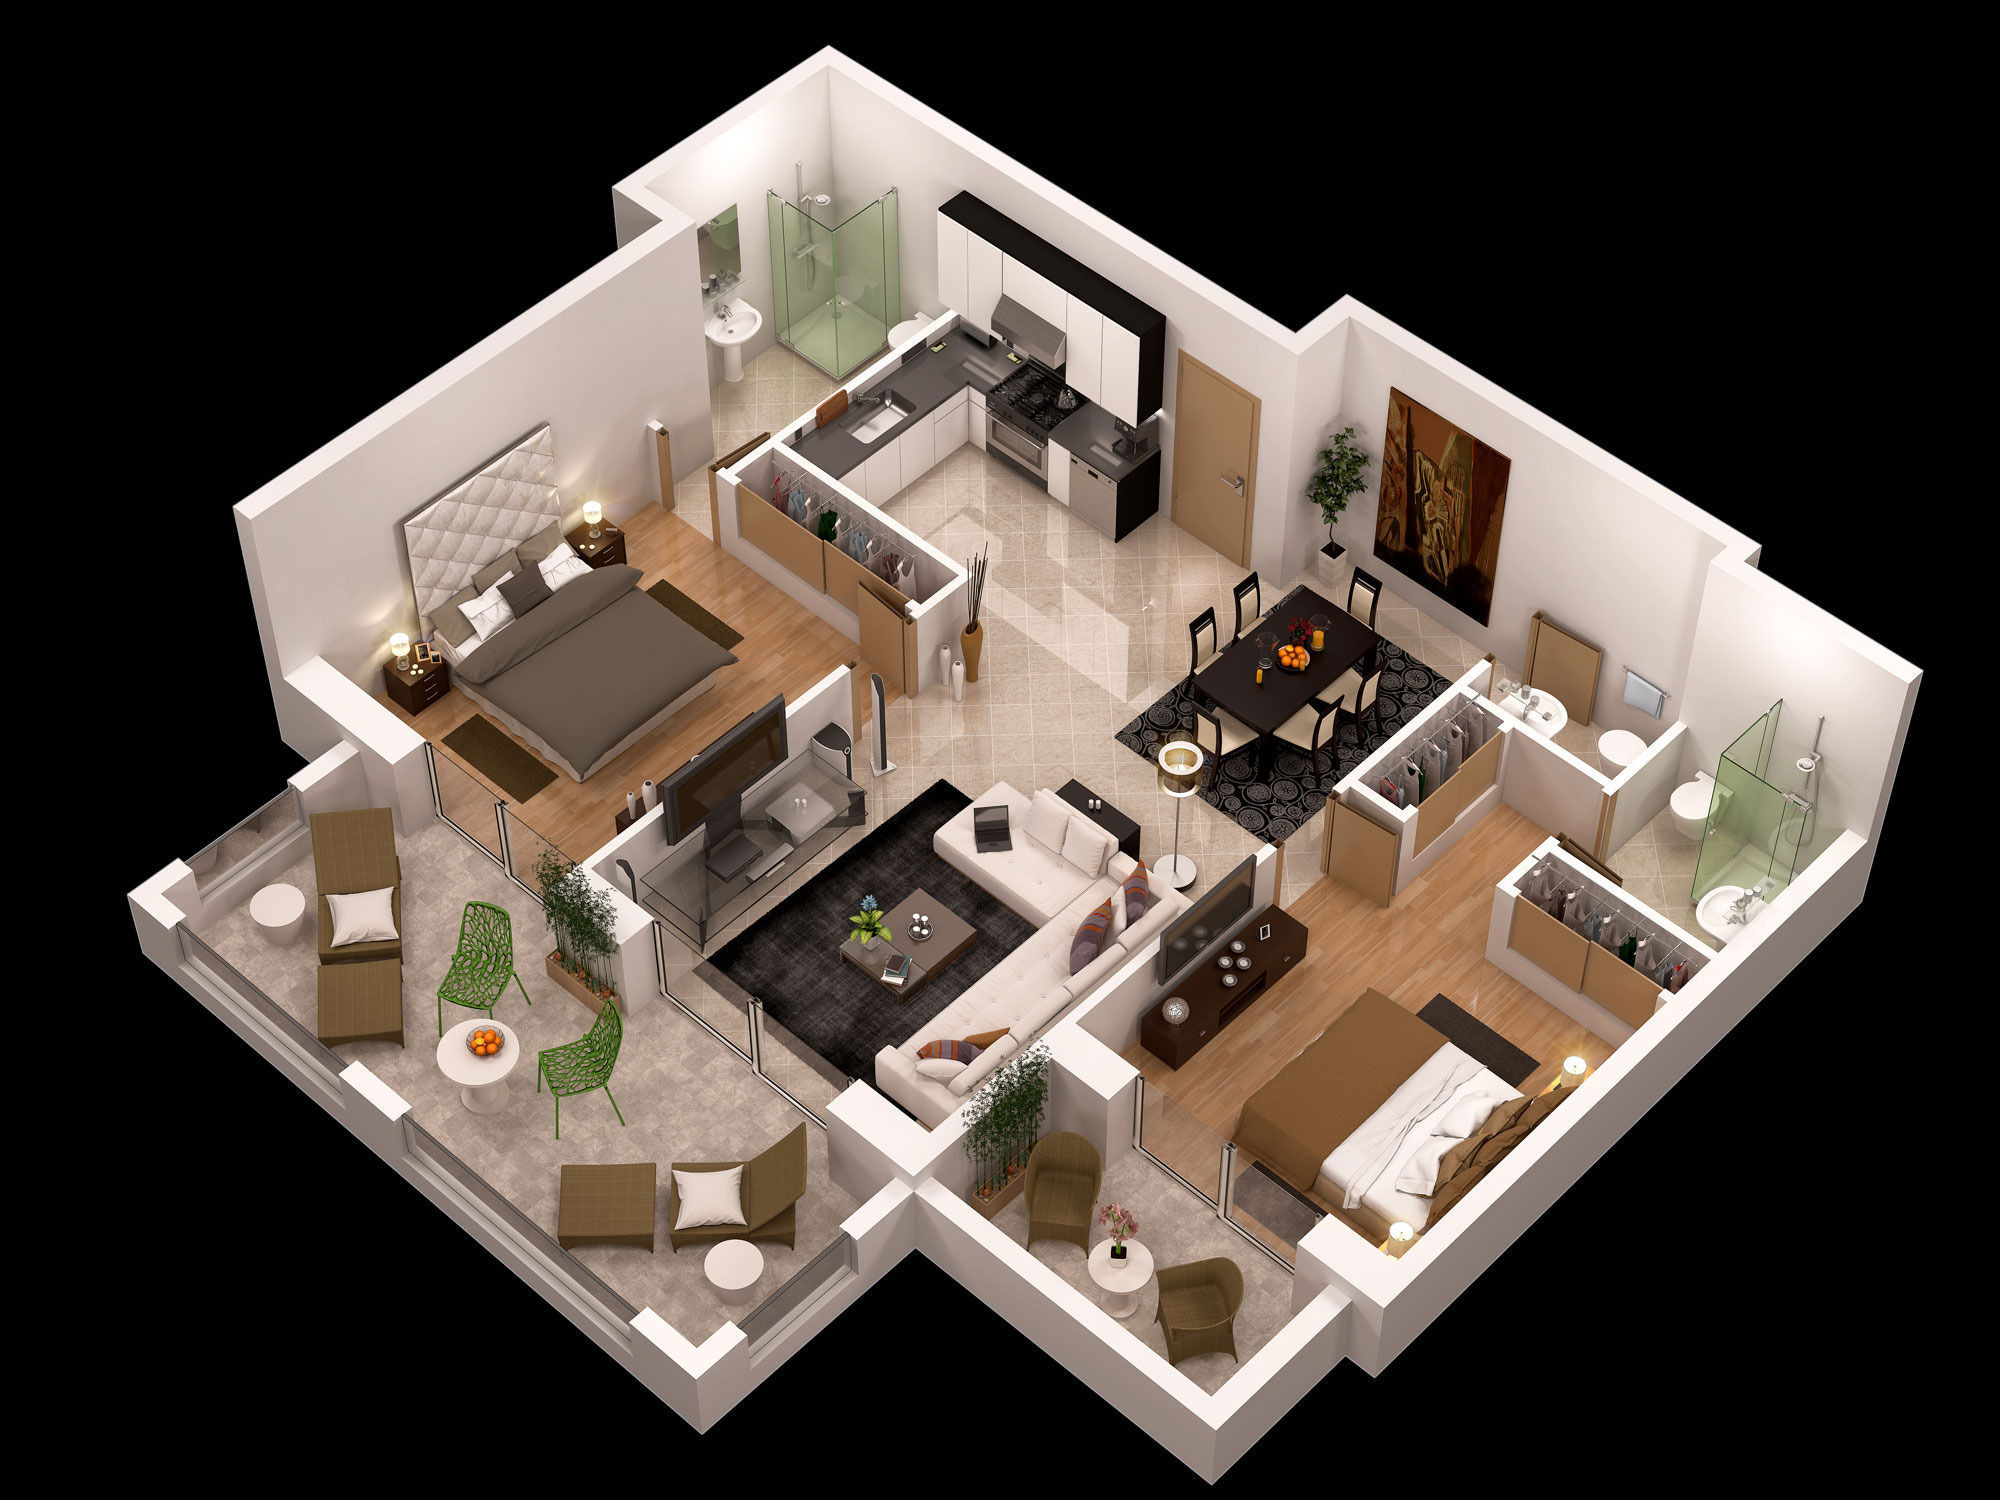 Detailed Floor Plan 3d 3D Model Max Obj